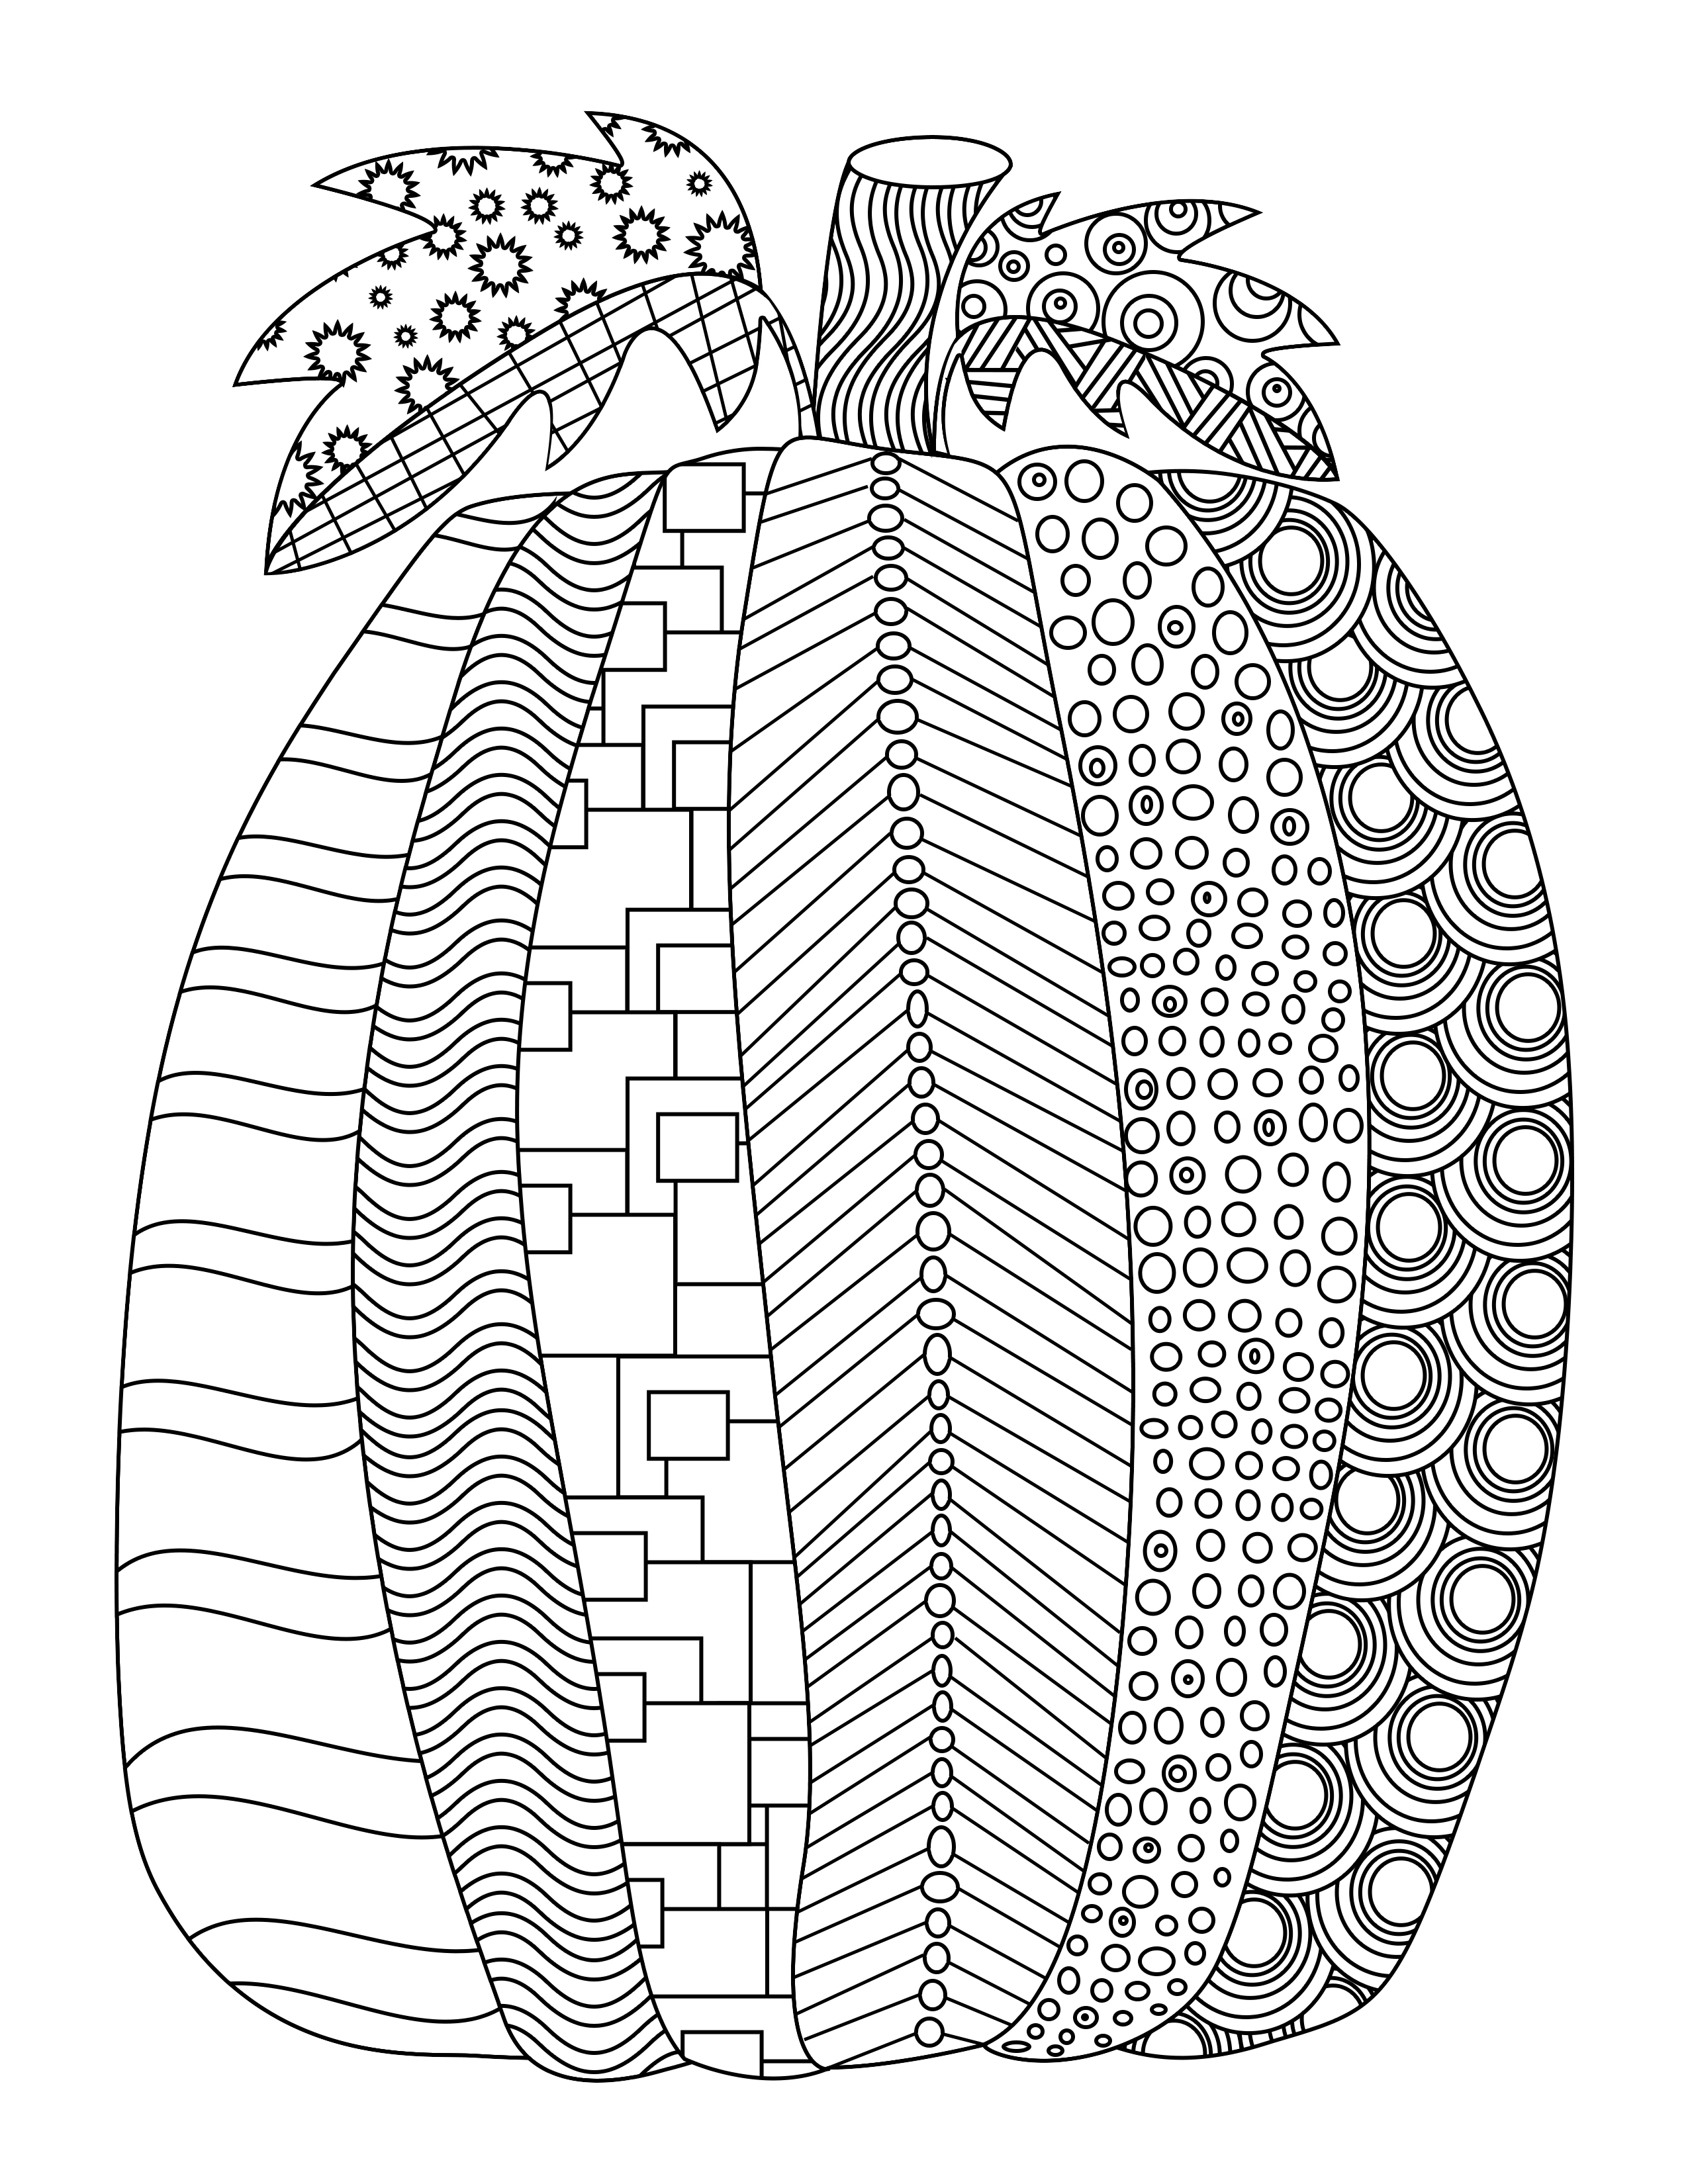 2550x3300 Fall Free Printable Adult Coloring Pages Pat Catan's Blog